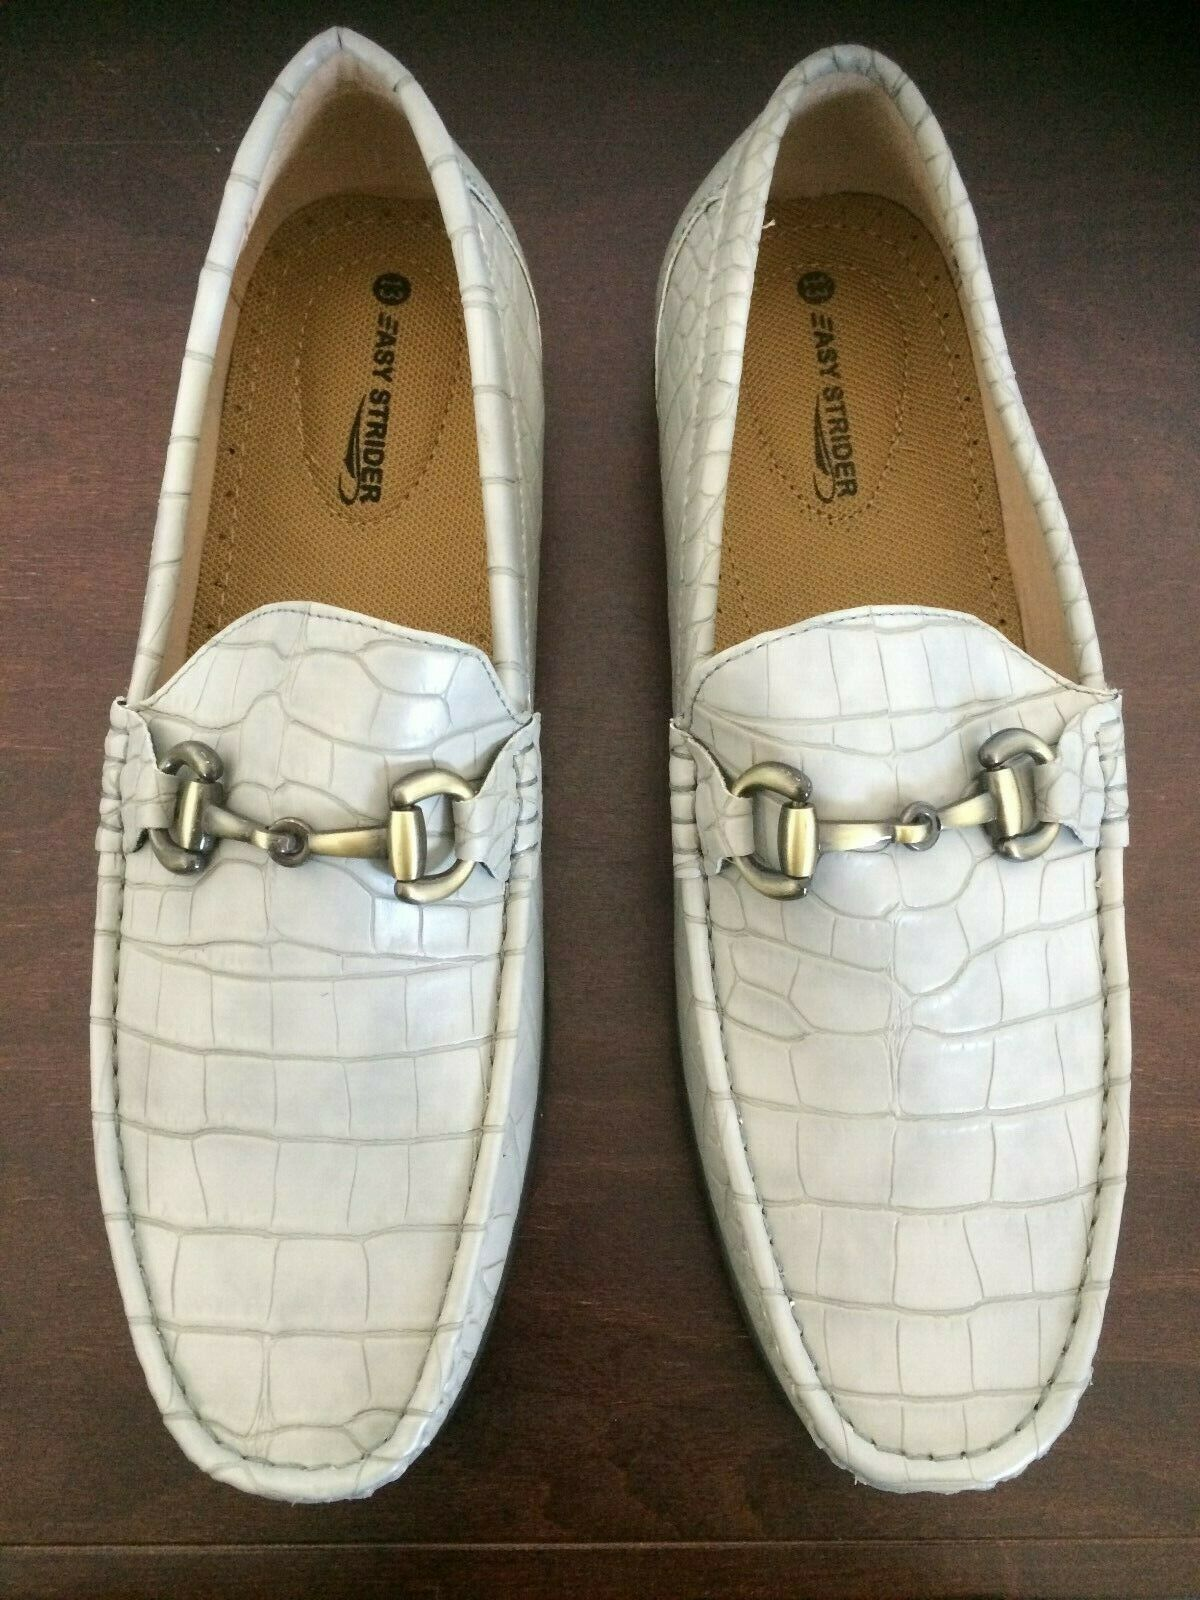 Men's Dress shoes by Easy Rider